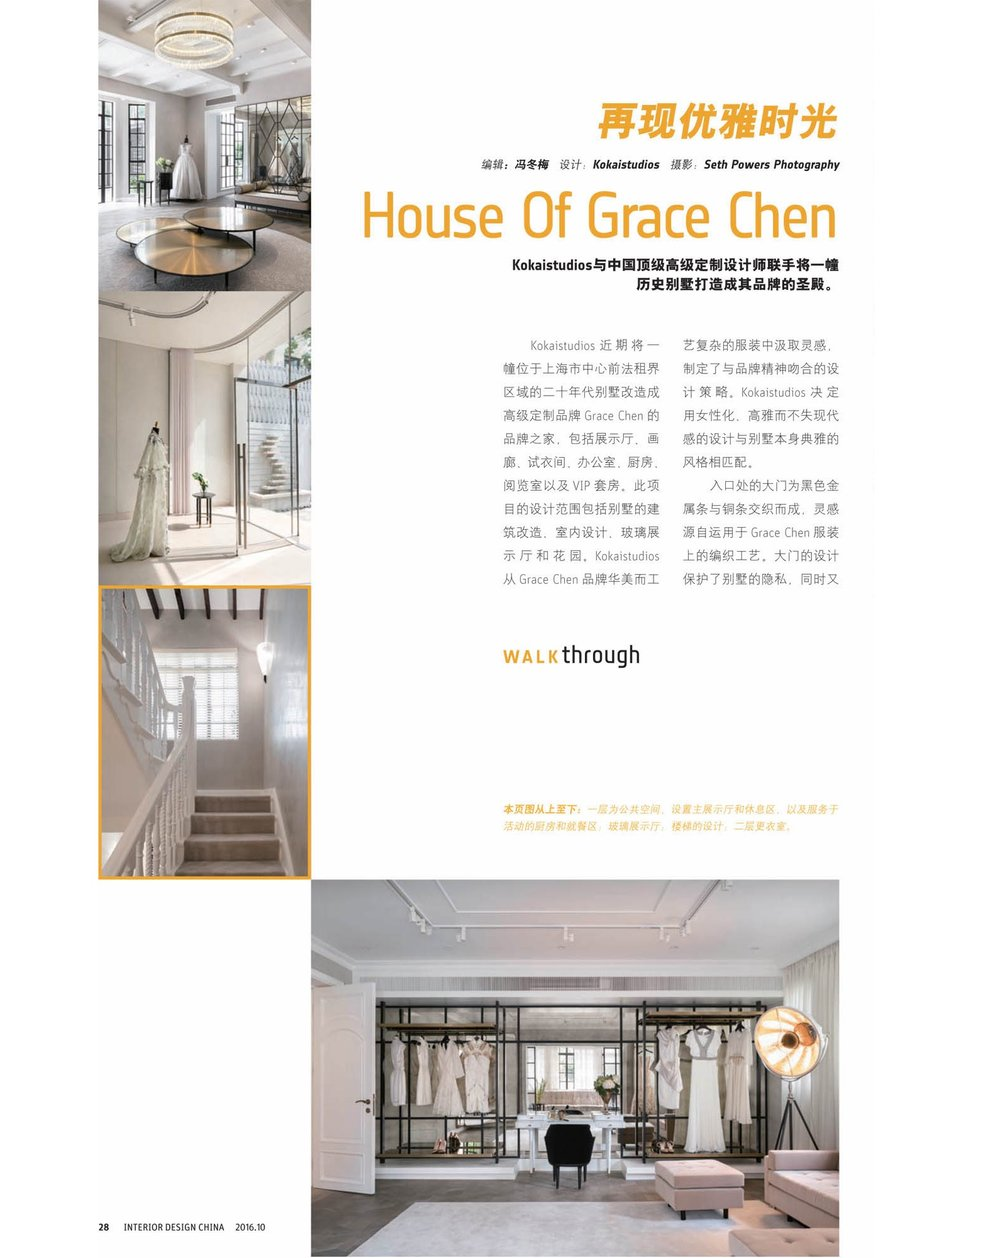 Interior Design China_201610_Grace Chen_2.jpg